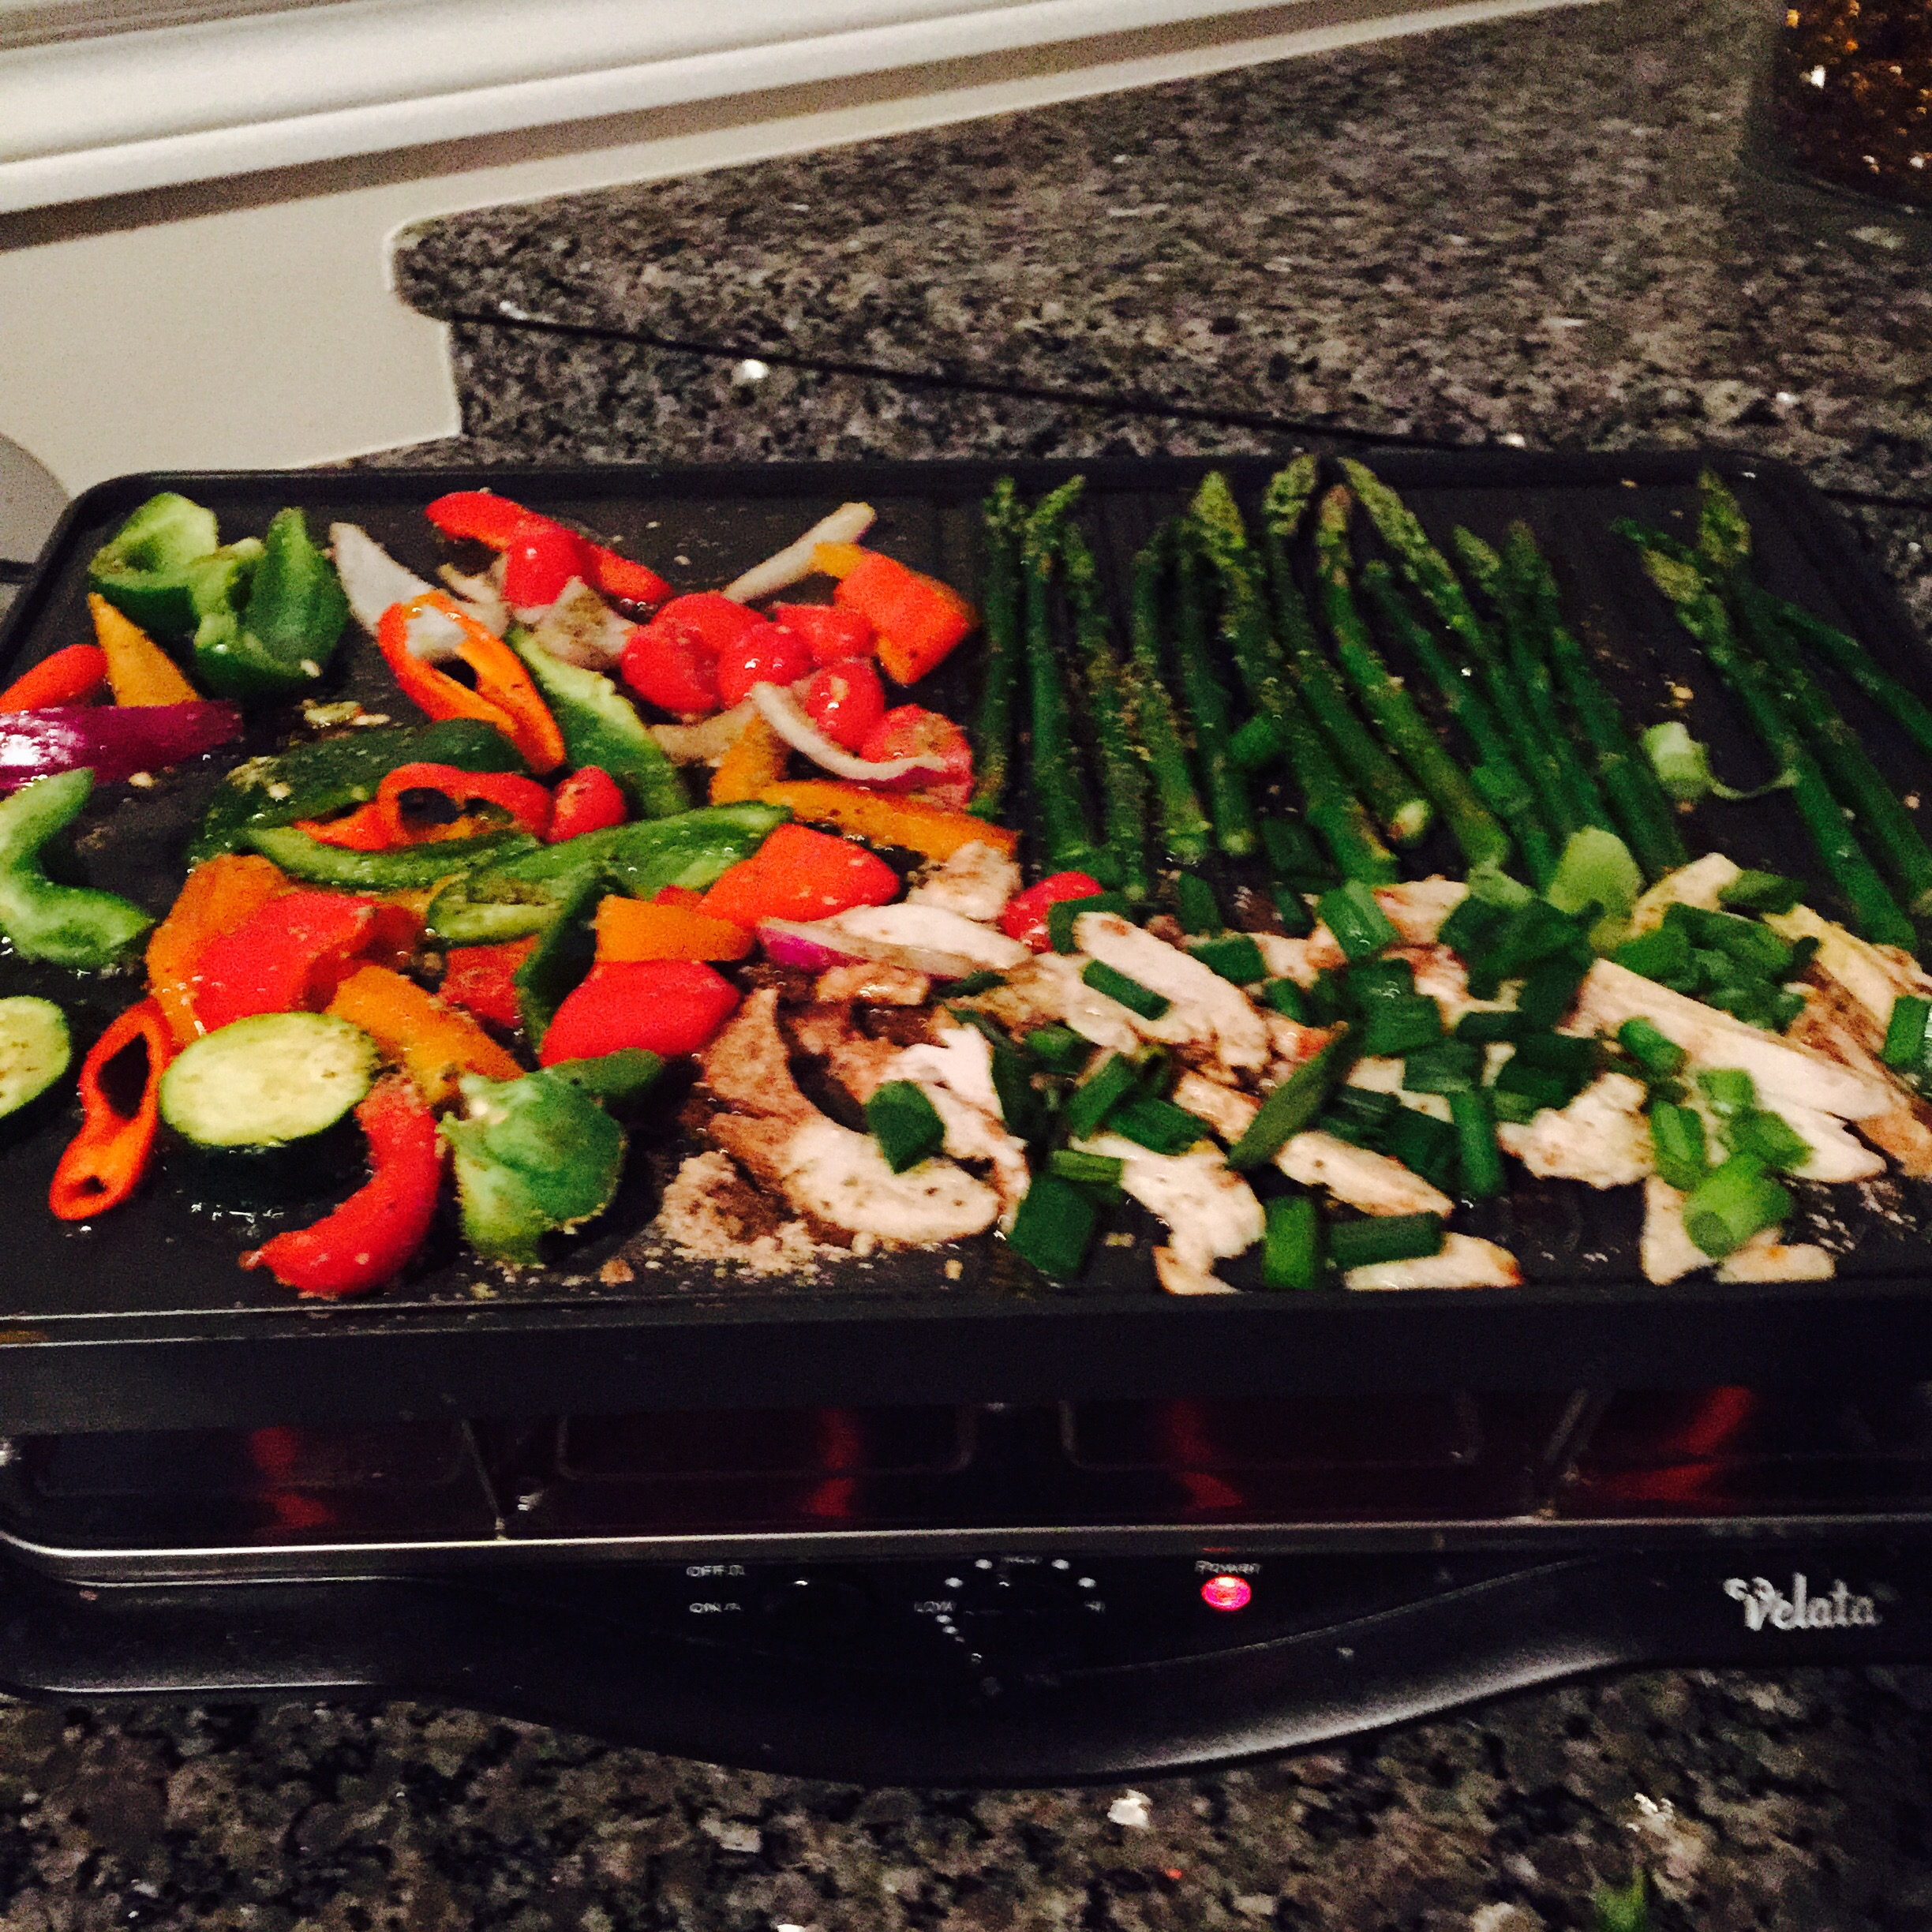 Hina's World: Grilled Vegetables & Chicken | Hina's Blog ...